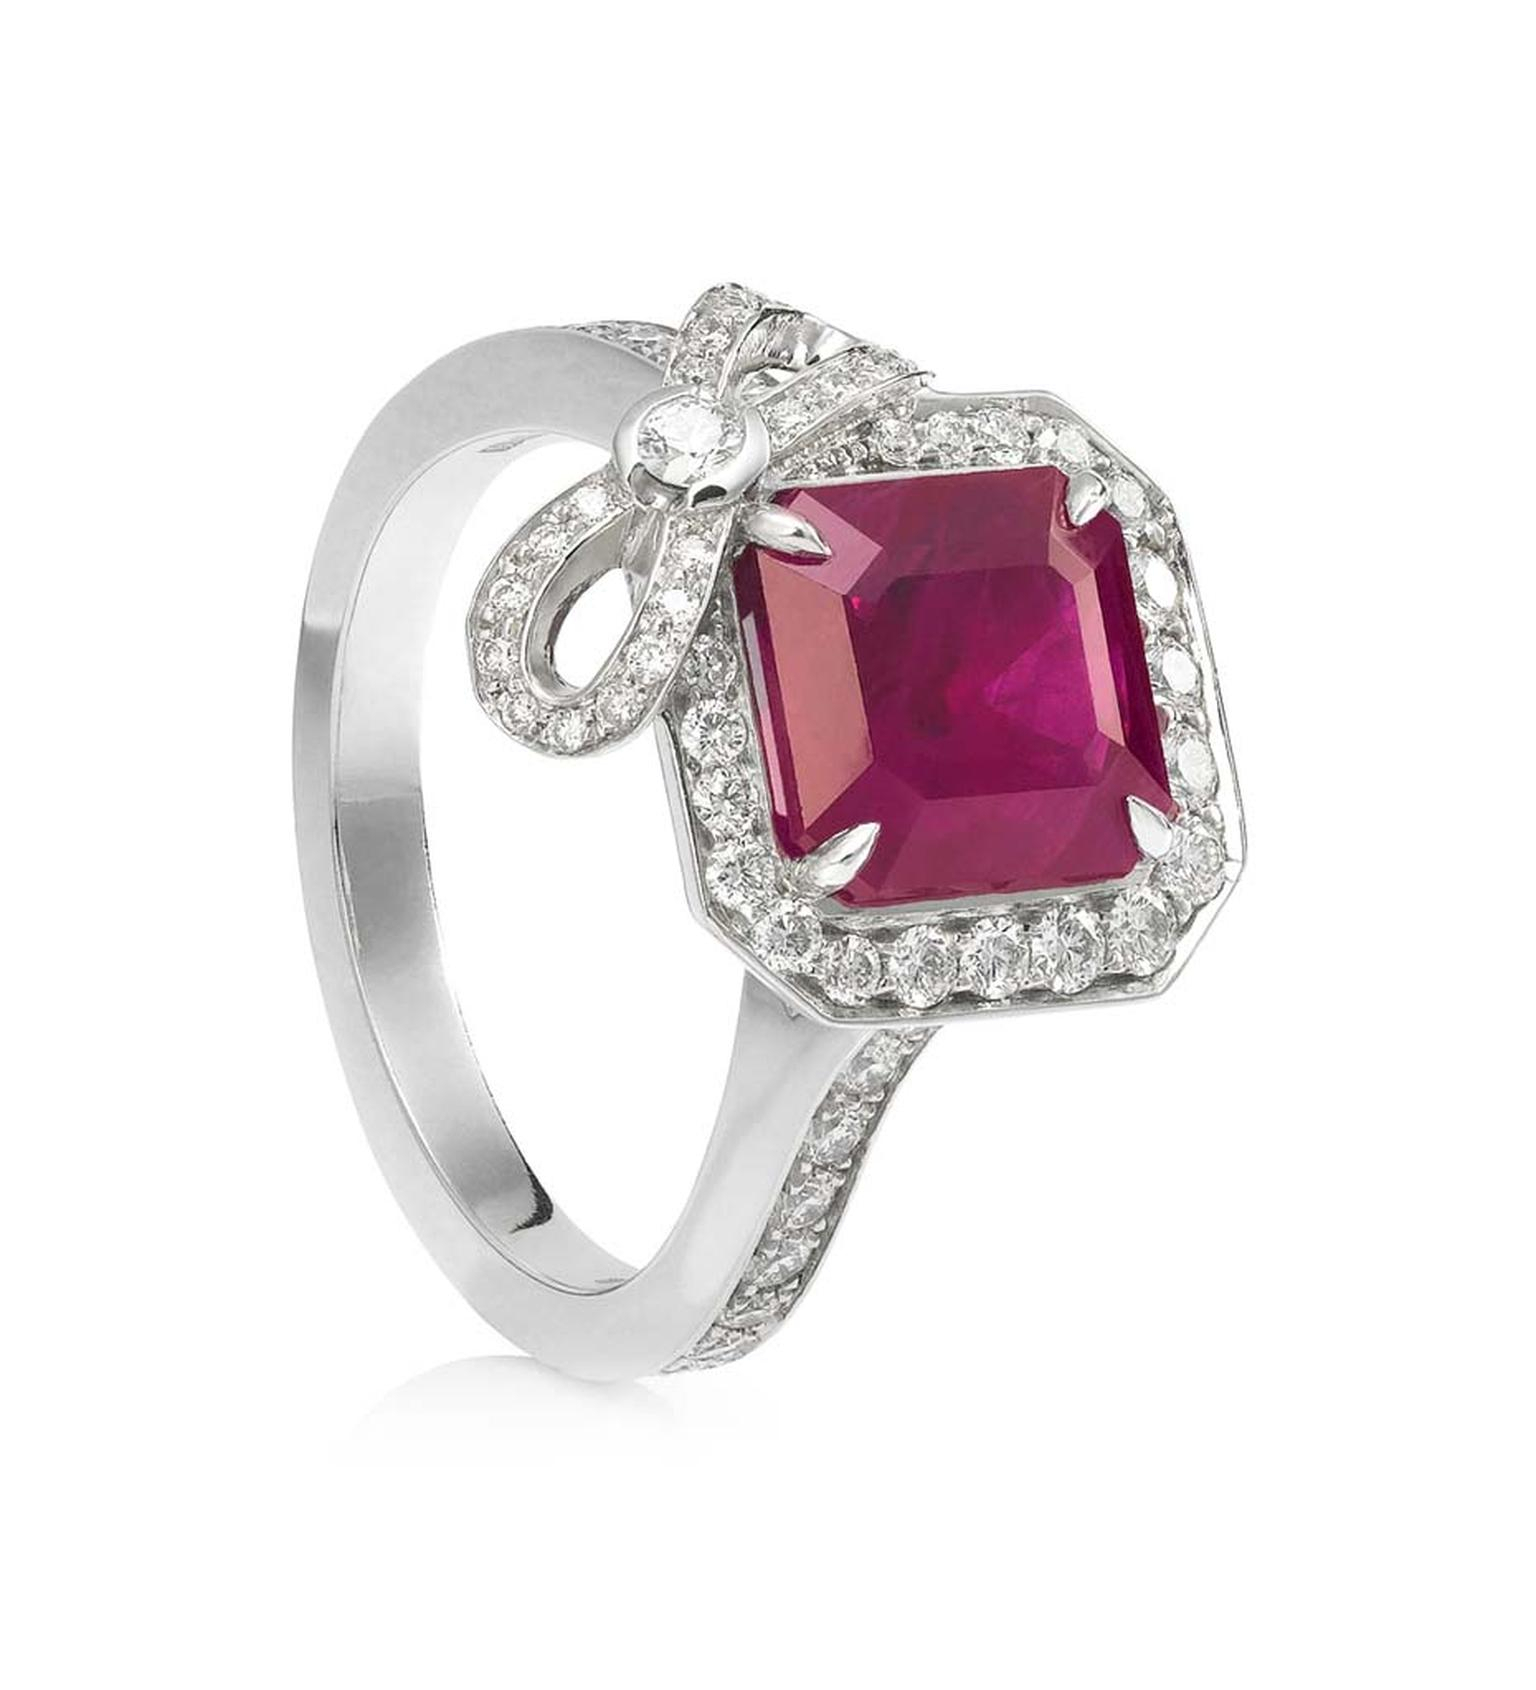 Engage The Heart: The Colourful Appeal Of Ruby Engagement Intended For Heart Shaped Engagement Rings With Tapered Baguette Side Stones (View 24 of 25)